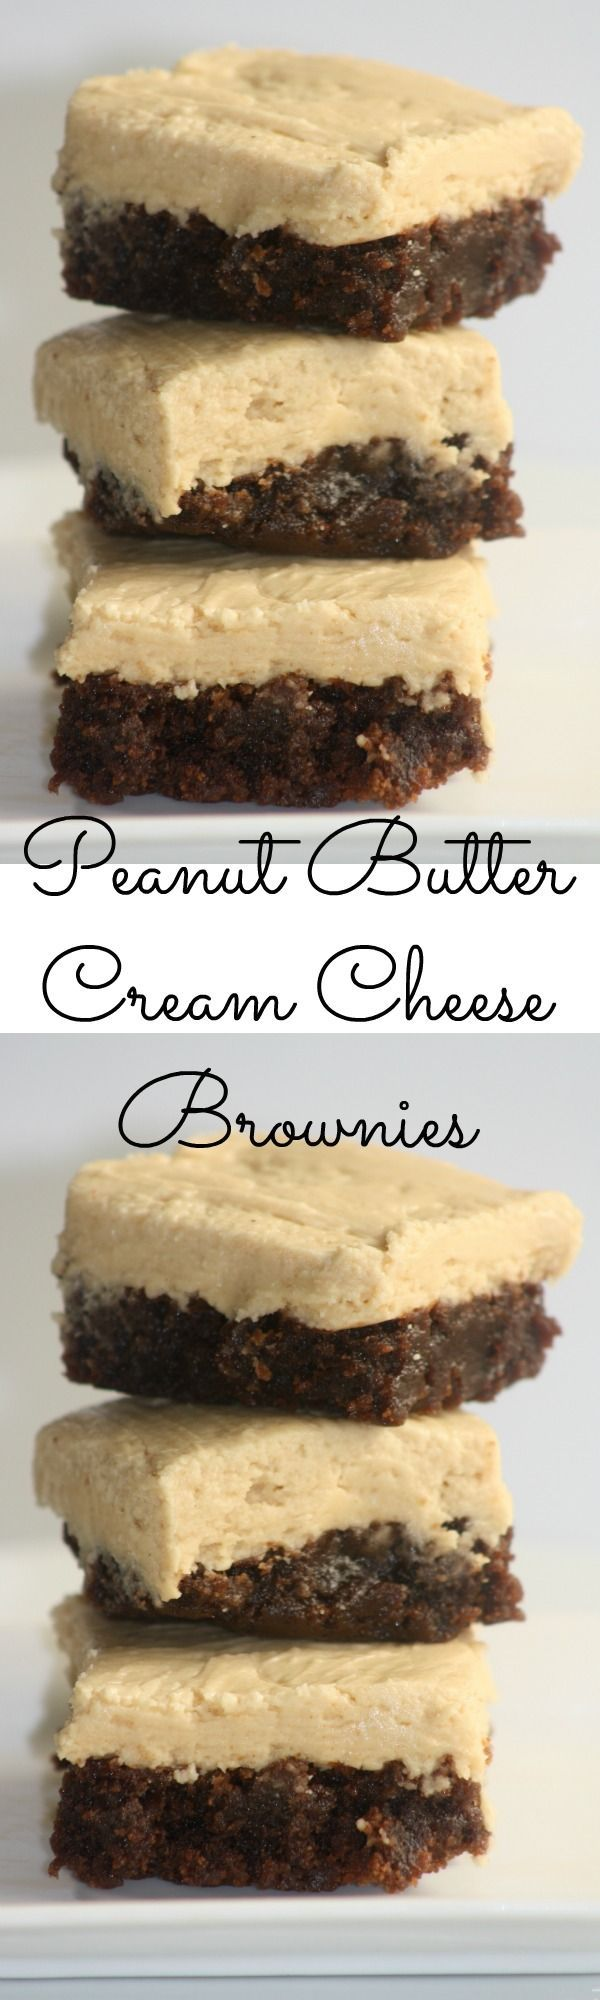 Peanut Butter Cream Cheese Brownies - These brownies are delicious and so easy to make!  |  http://www.sincerelyjean.com (Betty Crocker Chocolate Frosting)